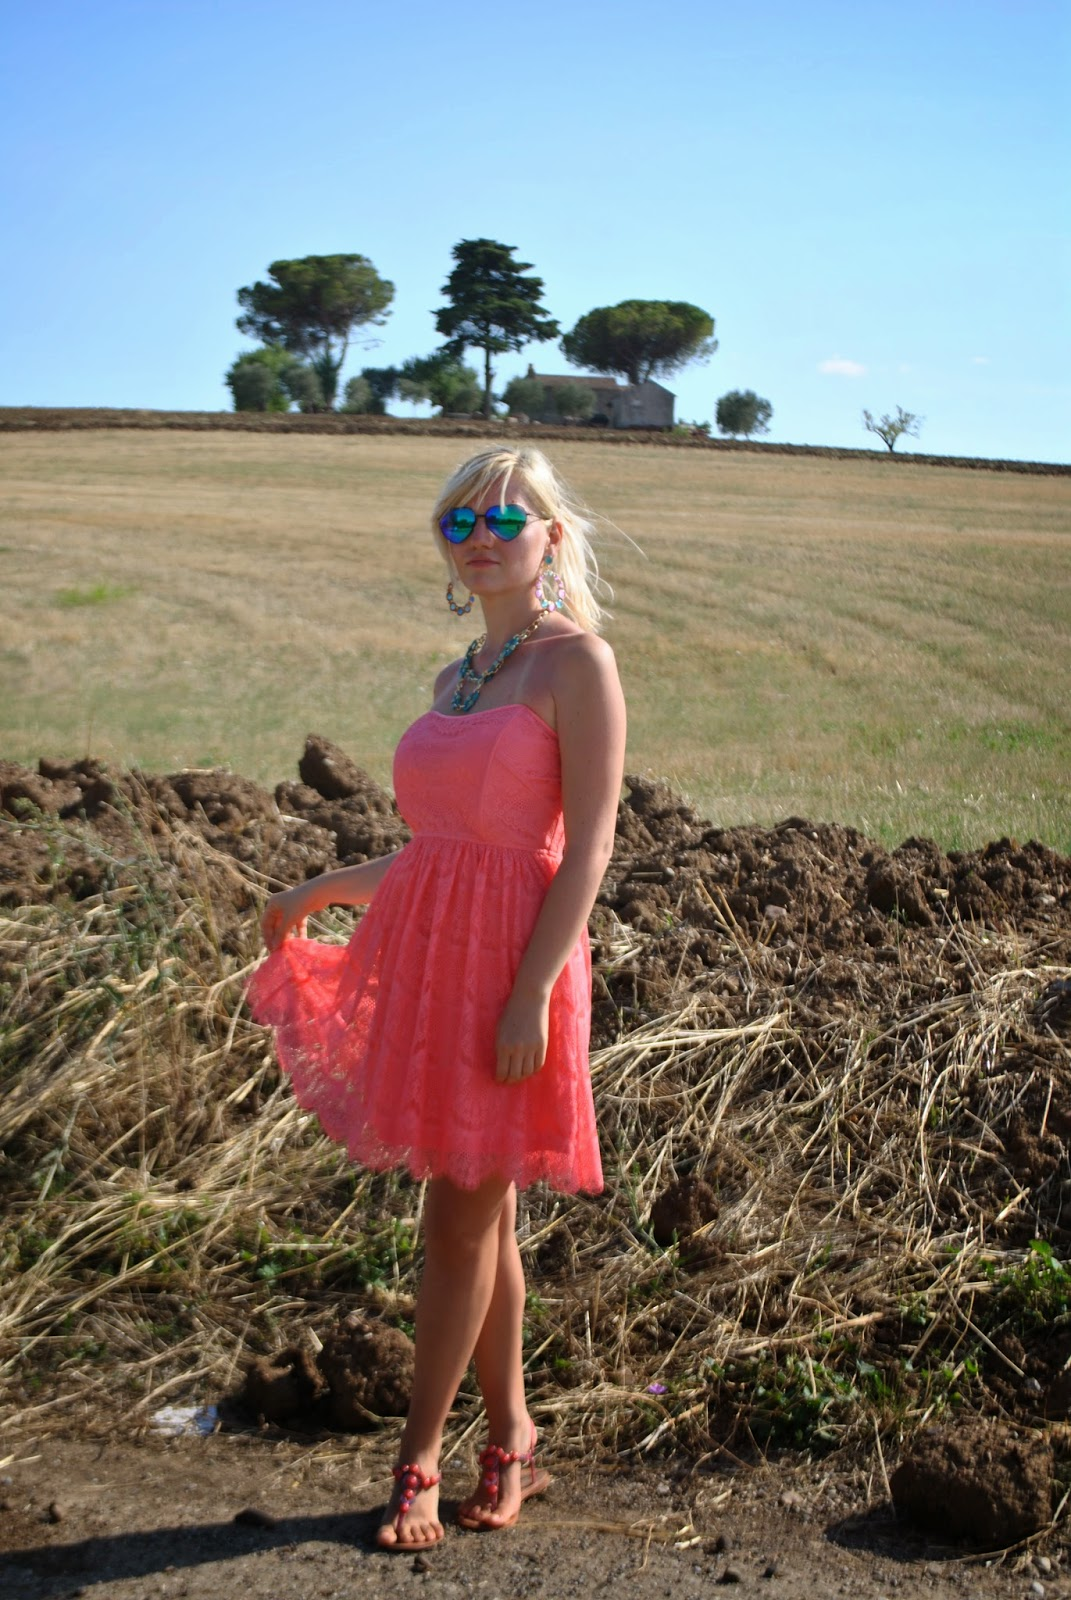 outfit abito in pizzo corallo occhiali a specchio collana majique capelli raccolti outfit abito in pizzo outfit agosto 2014 outfit estivi outit agosto 2014 outfit collana majique fashion blogger italiane fashion blogger bionde fashion blogger milano occhiali lenti a specchio a forma di cuore mariafelicia magno fashion blogger di colorblock by felym